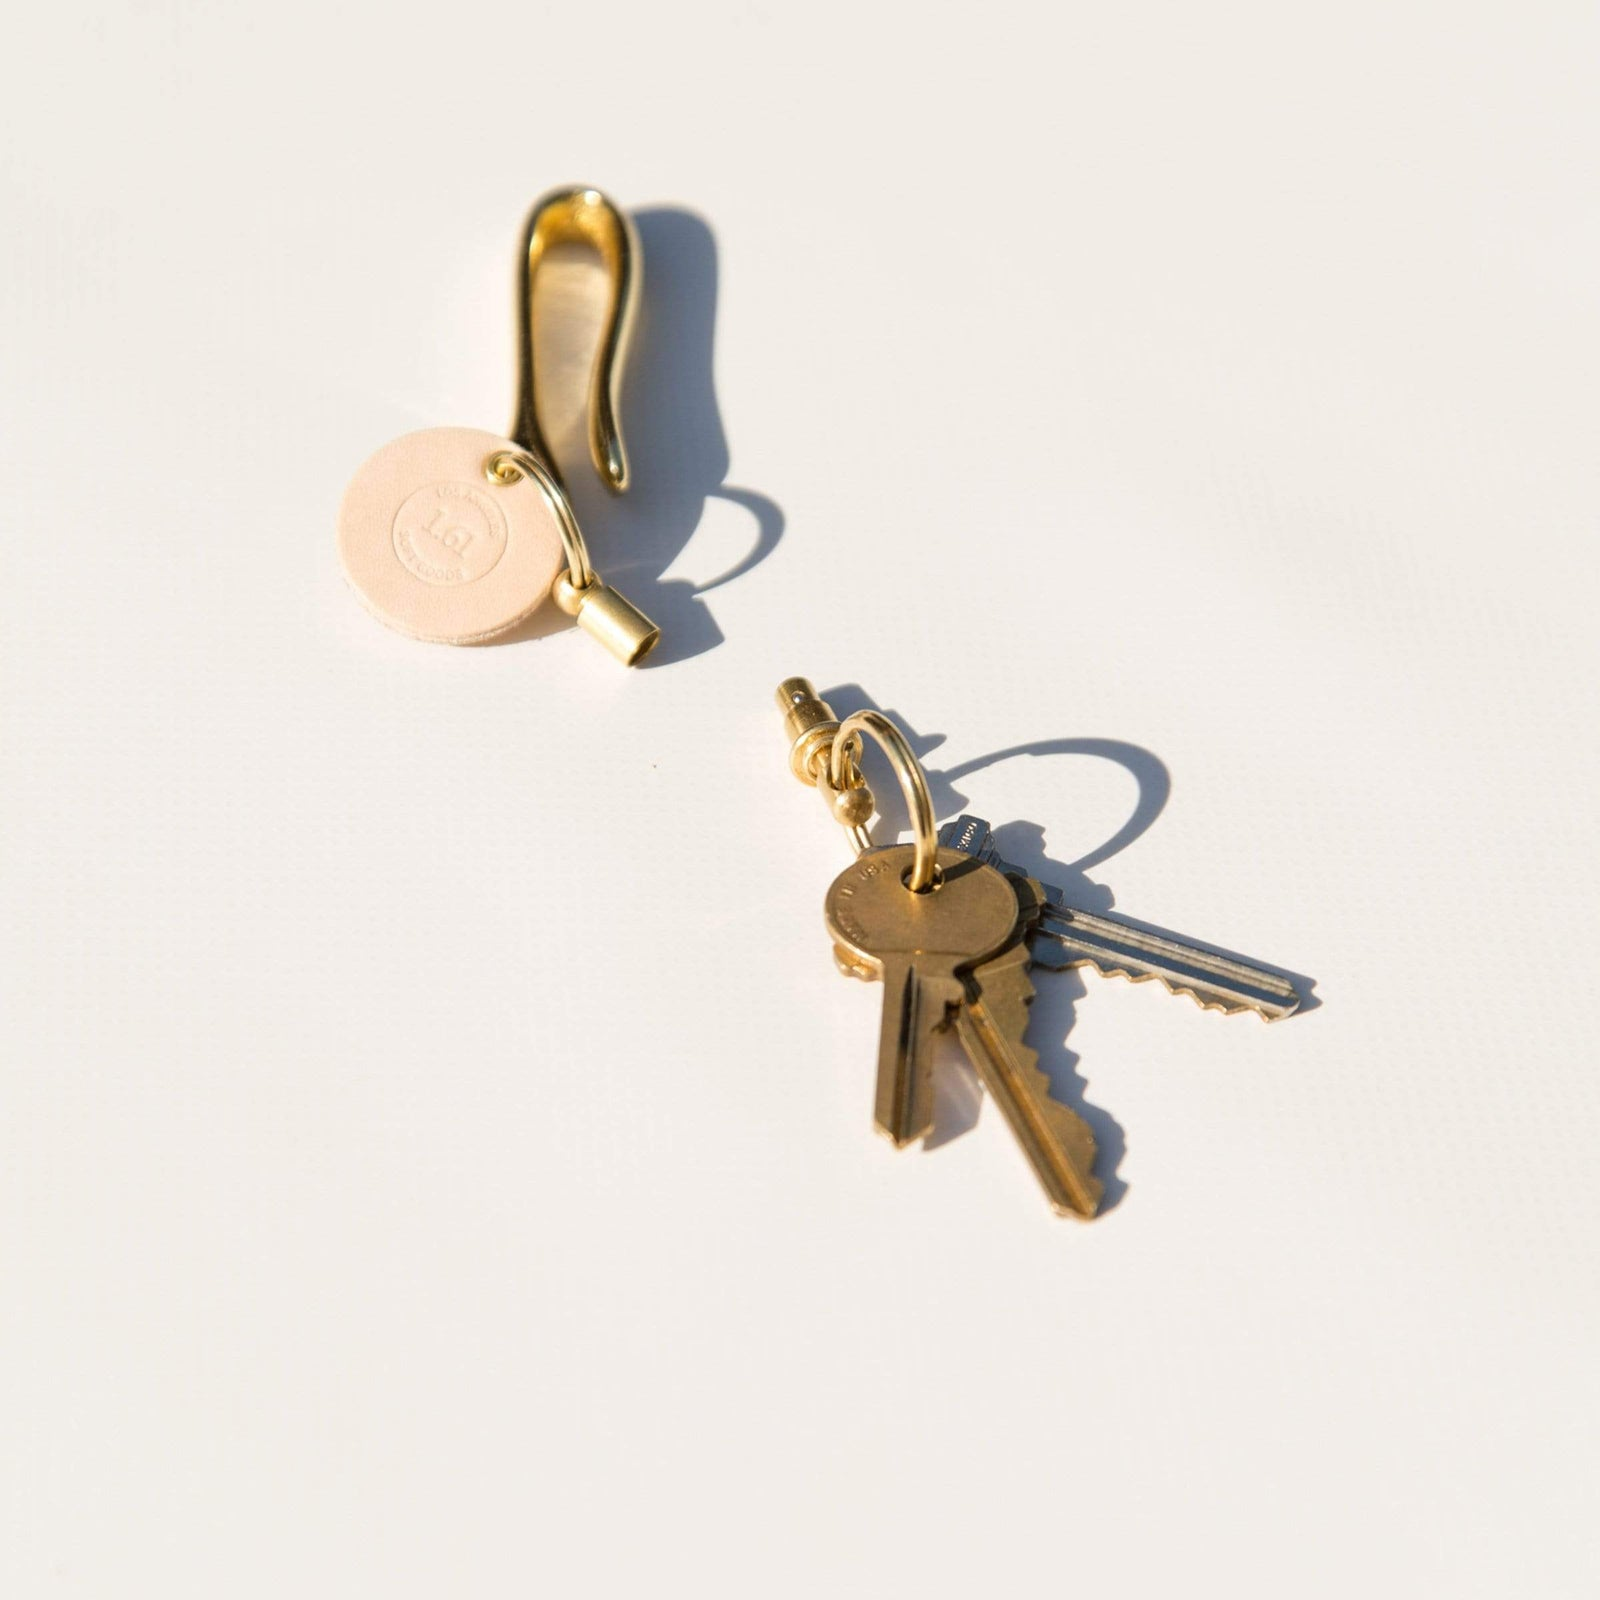 1.61 Soft Goods Accessory Key Hook With Quick Release Key Holder